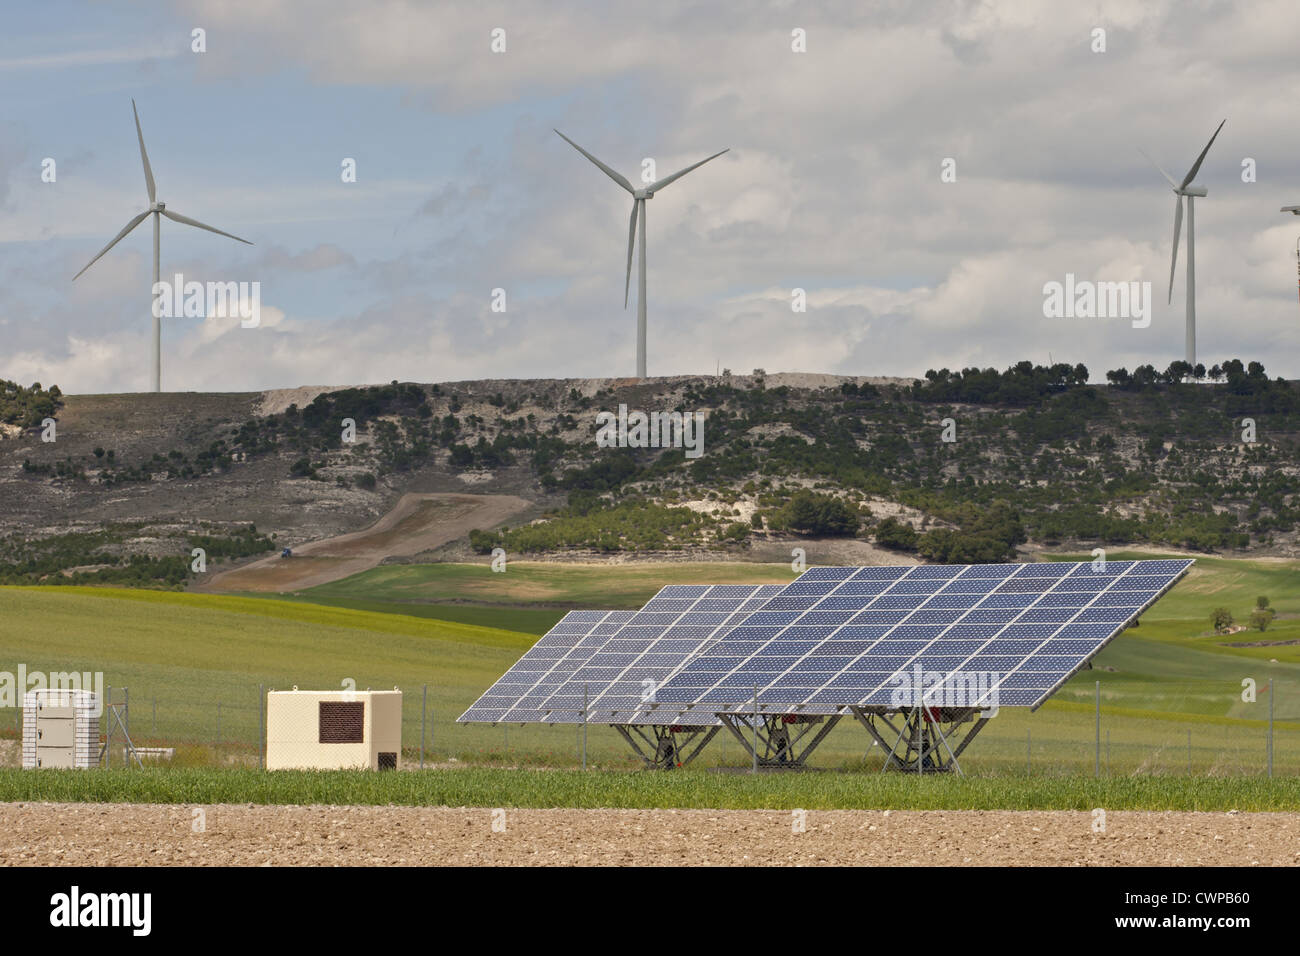 Solar energy panels and wind turbines on open plains, Castilla y Leon, Spain, may - Stock Image